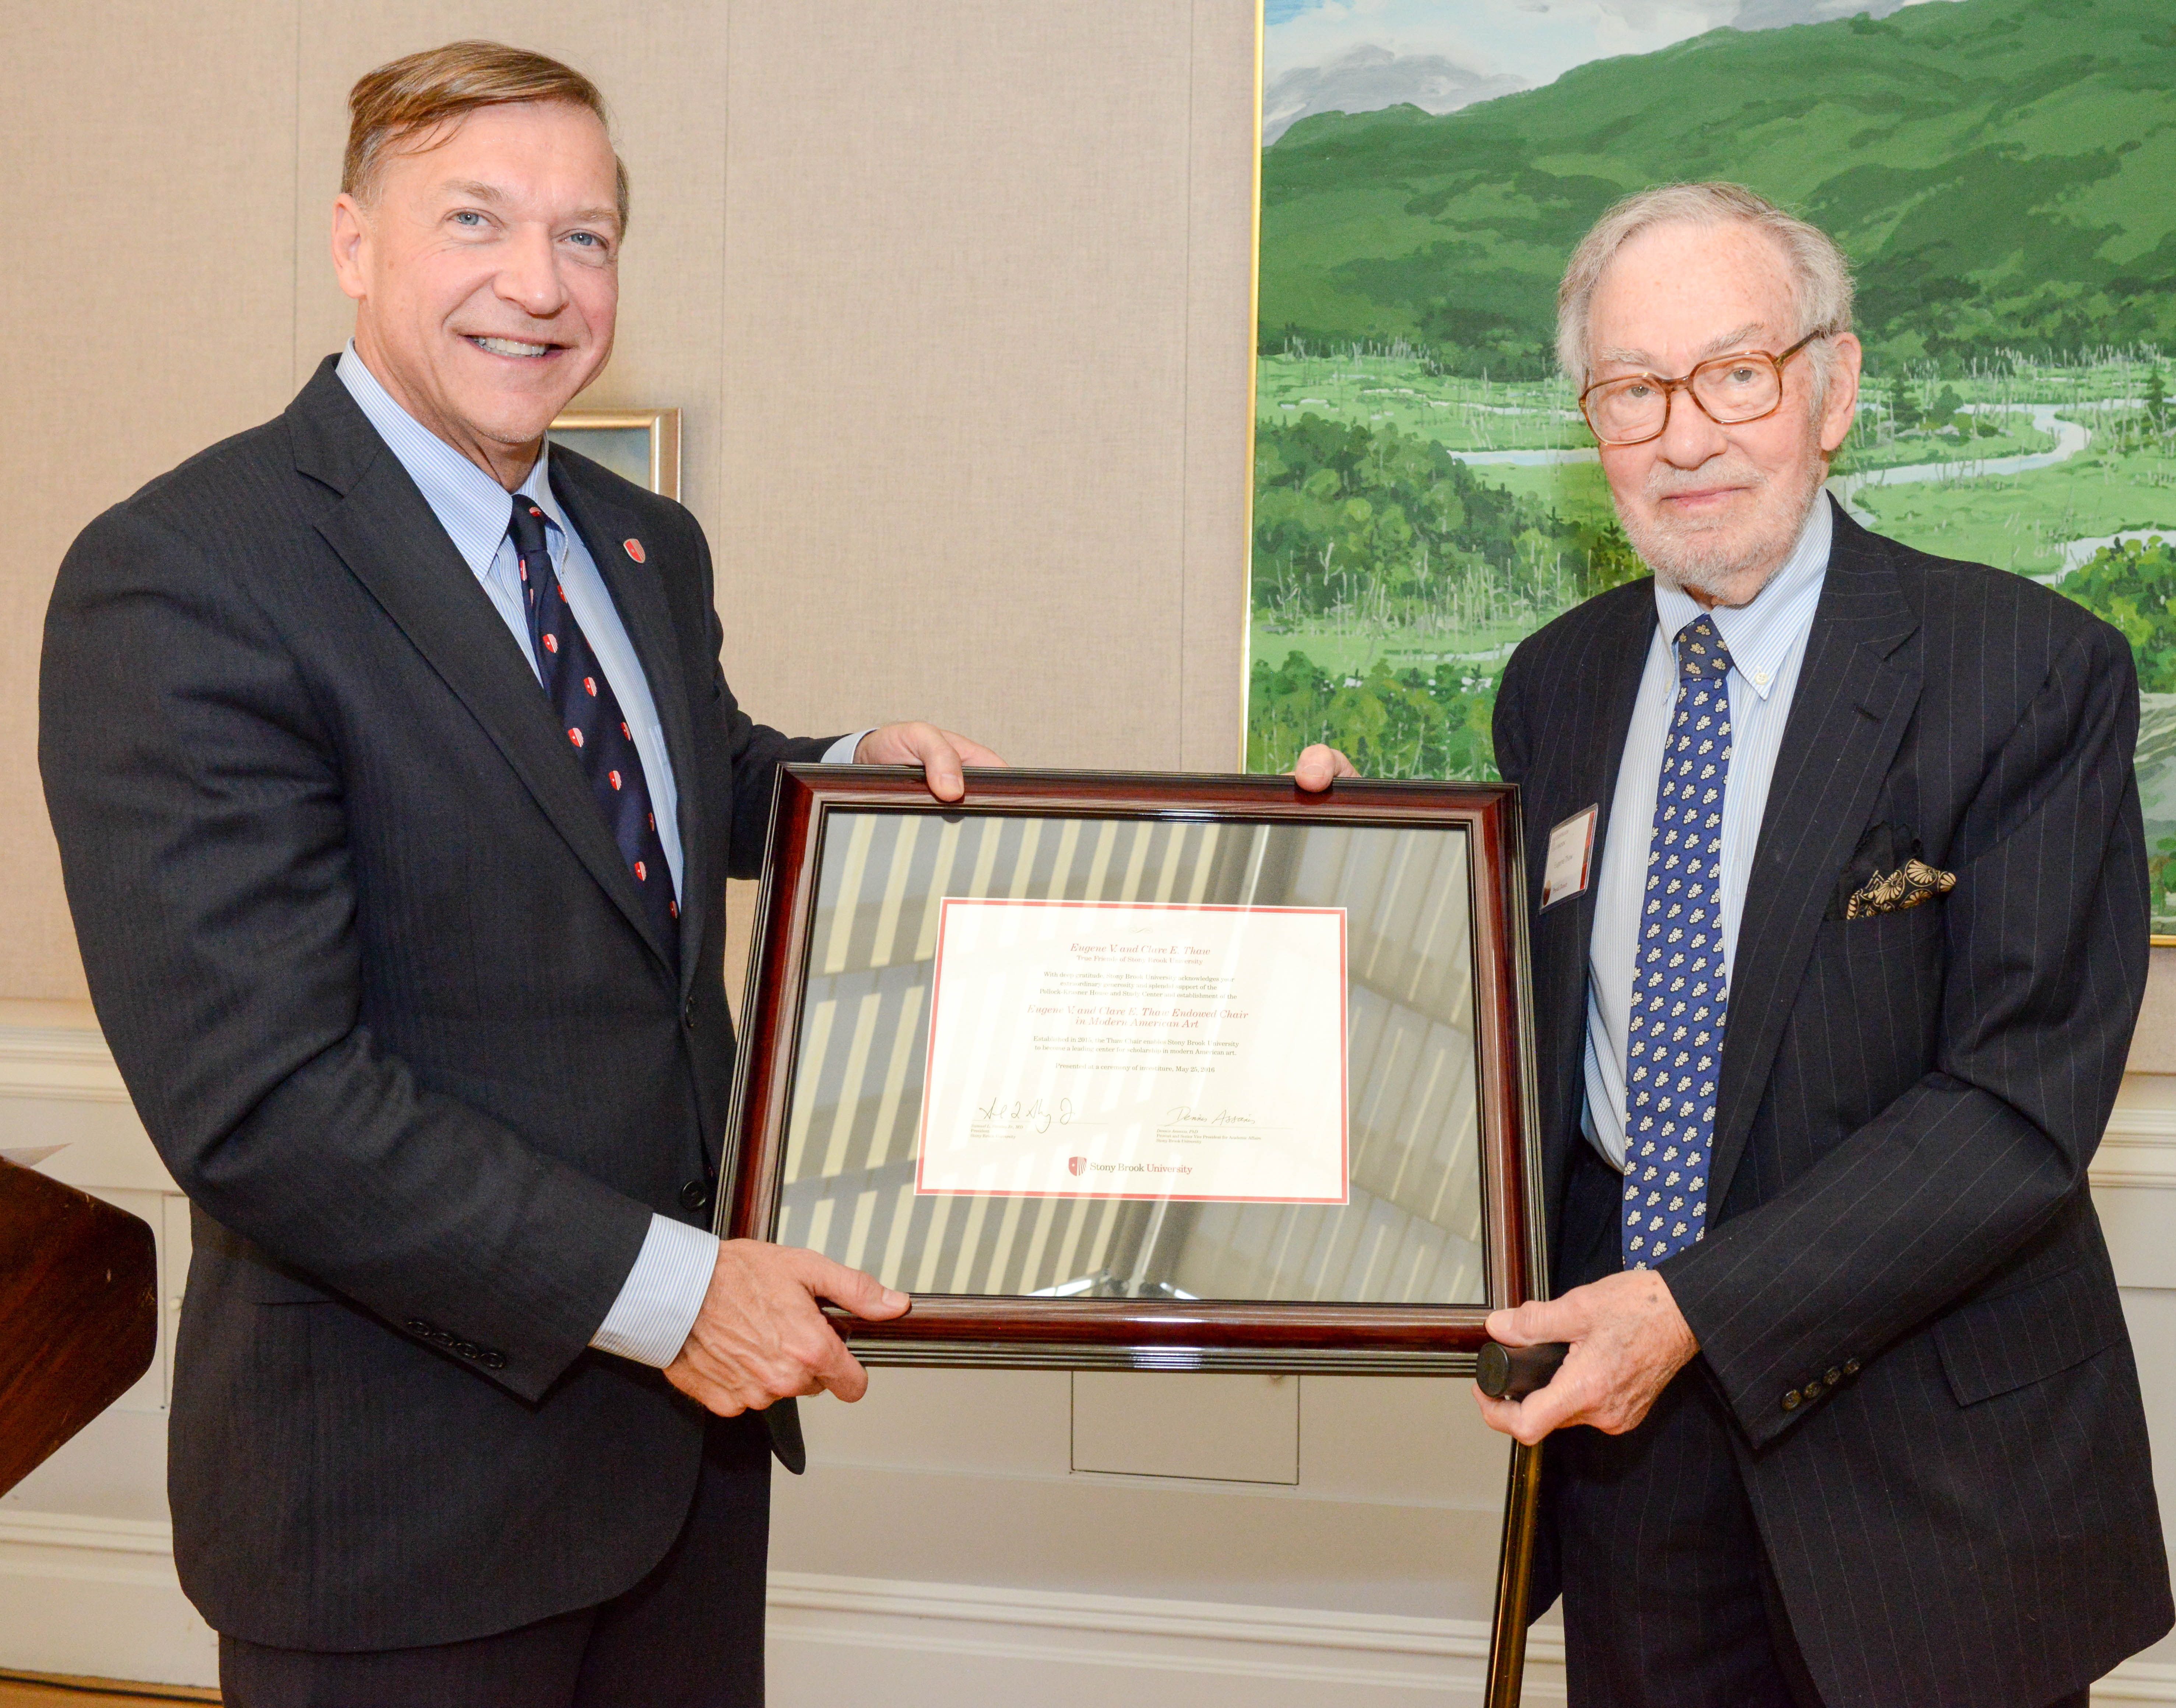 Stony Brook University President Samuel L. Stanley Jr. presents Eugene Thaw, esteemed art dealer and trusted friend and adviser to Lee Krasner, with a declaration honoring his generosity and support of the Pollock-Krasner House and Study Center and the establishment of the Eugene V. and Clare E. Thaw Endowed Chair in Modern American Art.